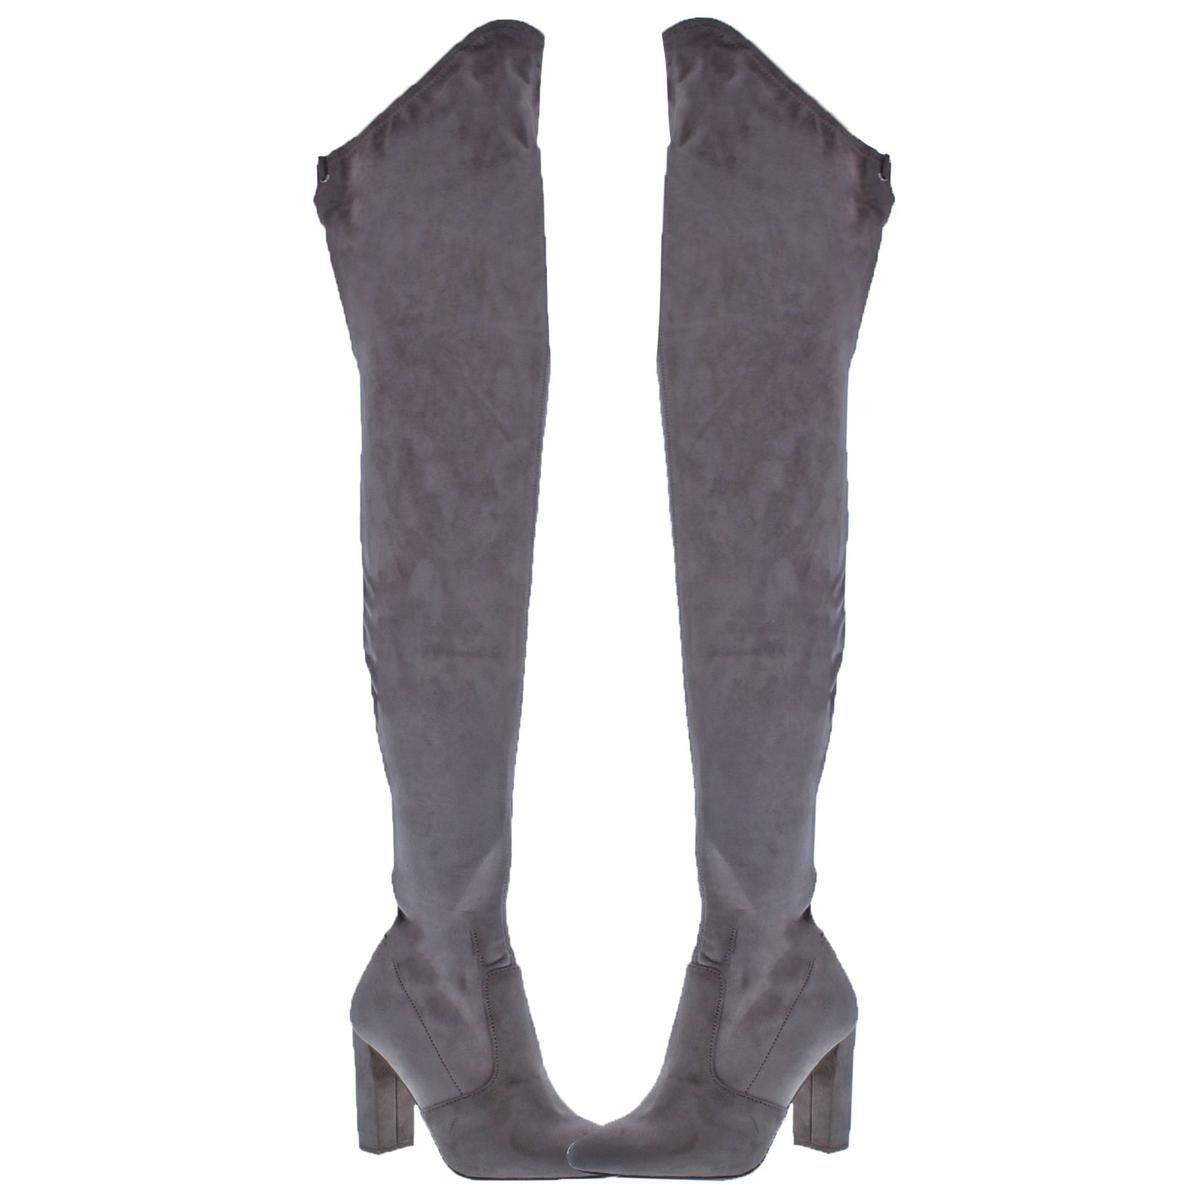 68db8e4a0dcc Shop Steve Madden Womens Elektric Thigh-High Boots Faux Suede Tall - Free  Shipping Today - Overstock - 24030625